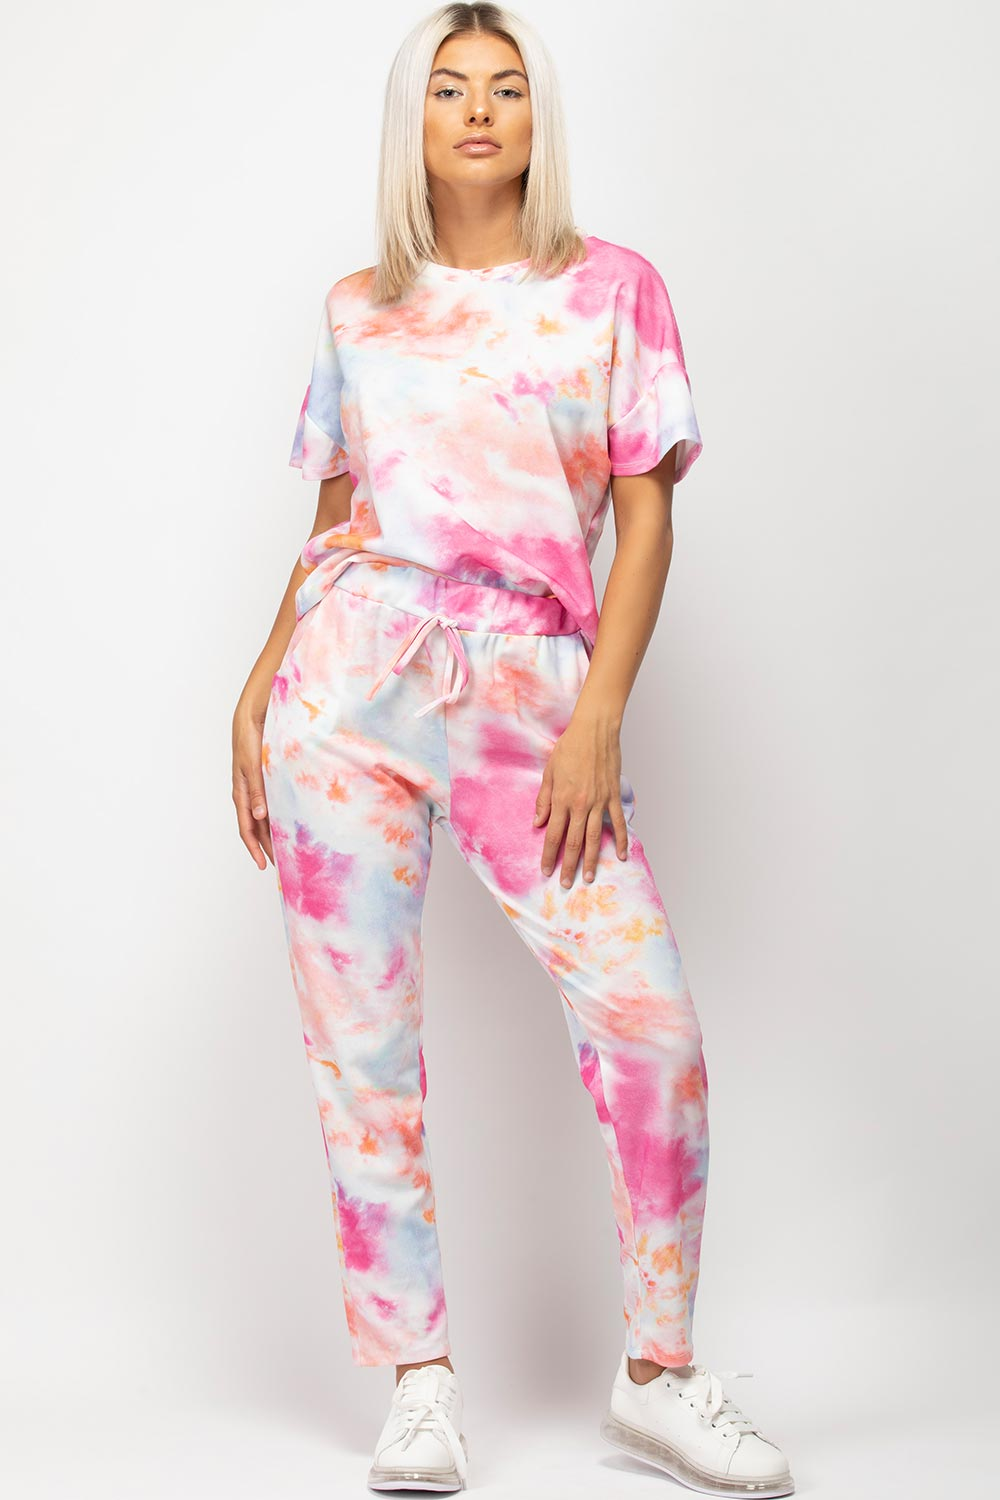 womens tie dye joggers and top loungewear set